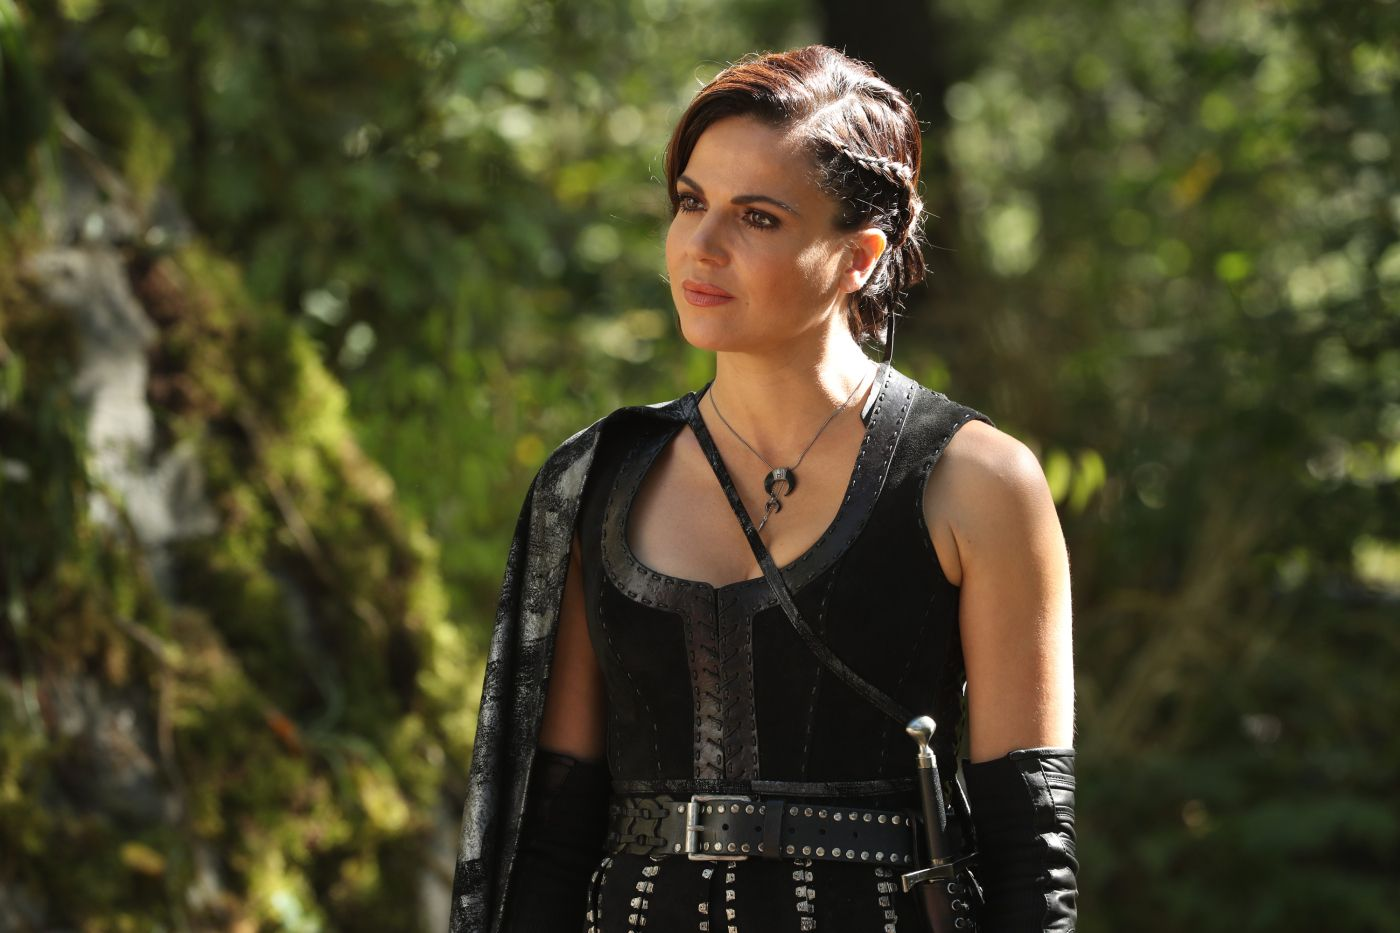 a02126d522ae3 ABC s Once Upon a Time — which in this season s previous even-numbered  episodes focused on Hook and then Rumple — this Friday serves up a  Regina-centric ...